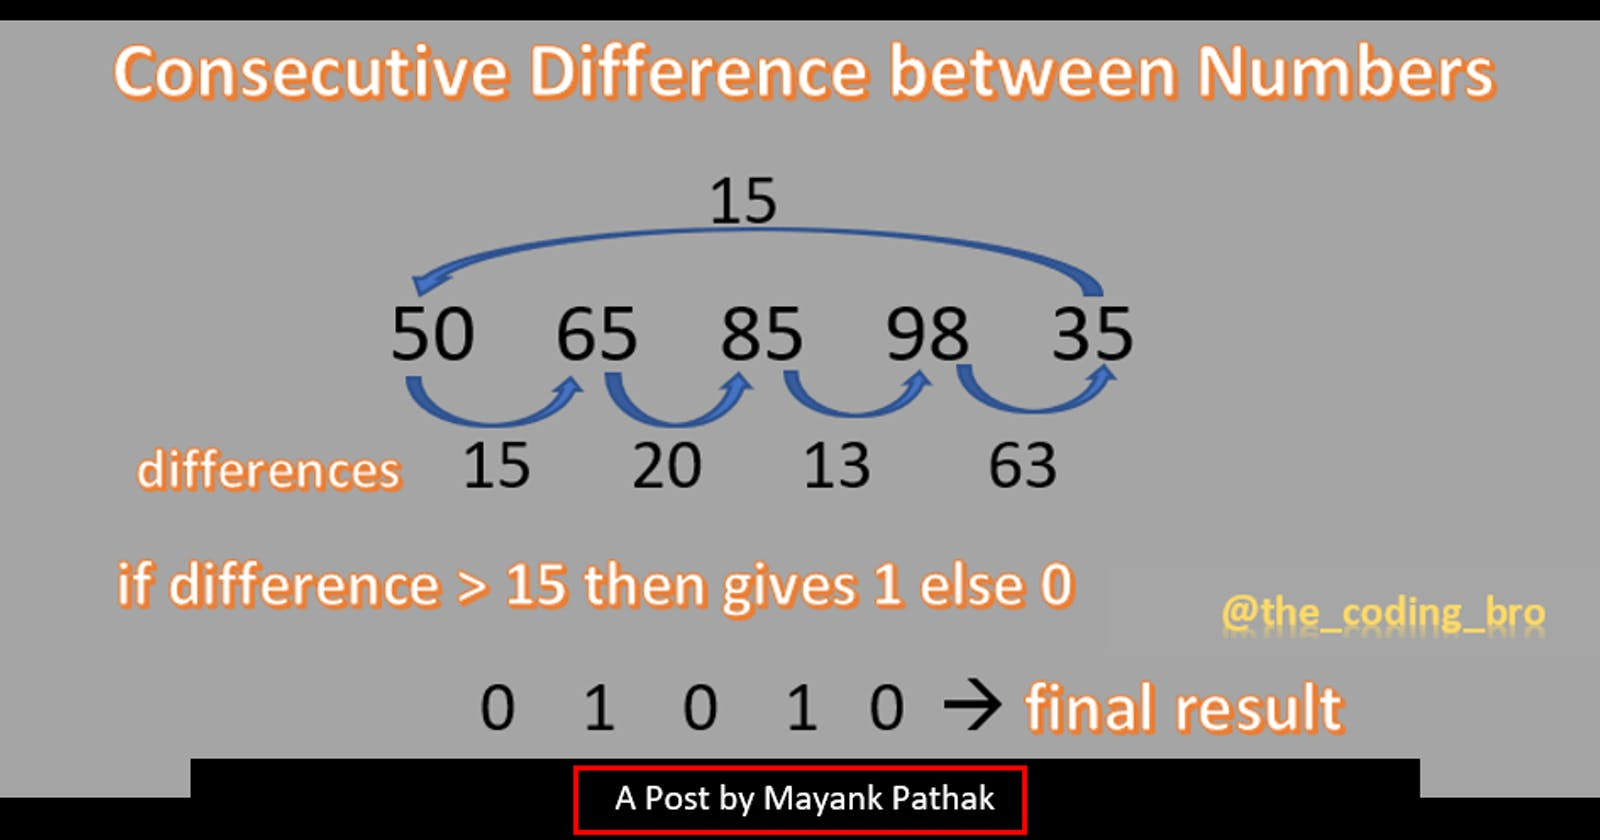 Consecutive difference of elements in an Array